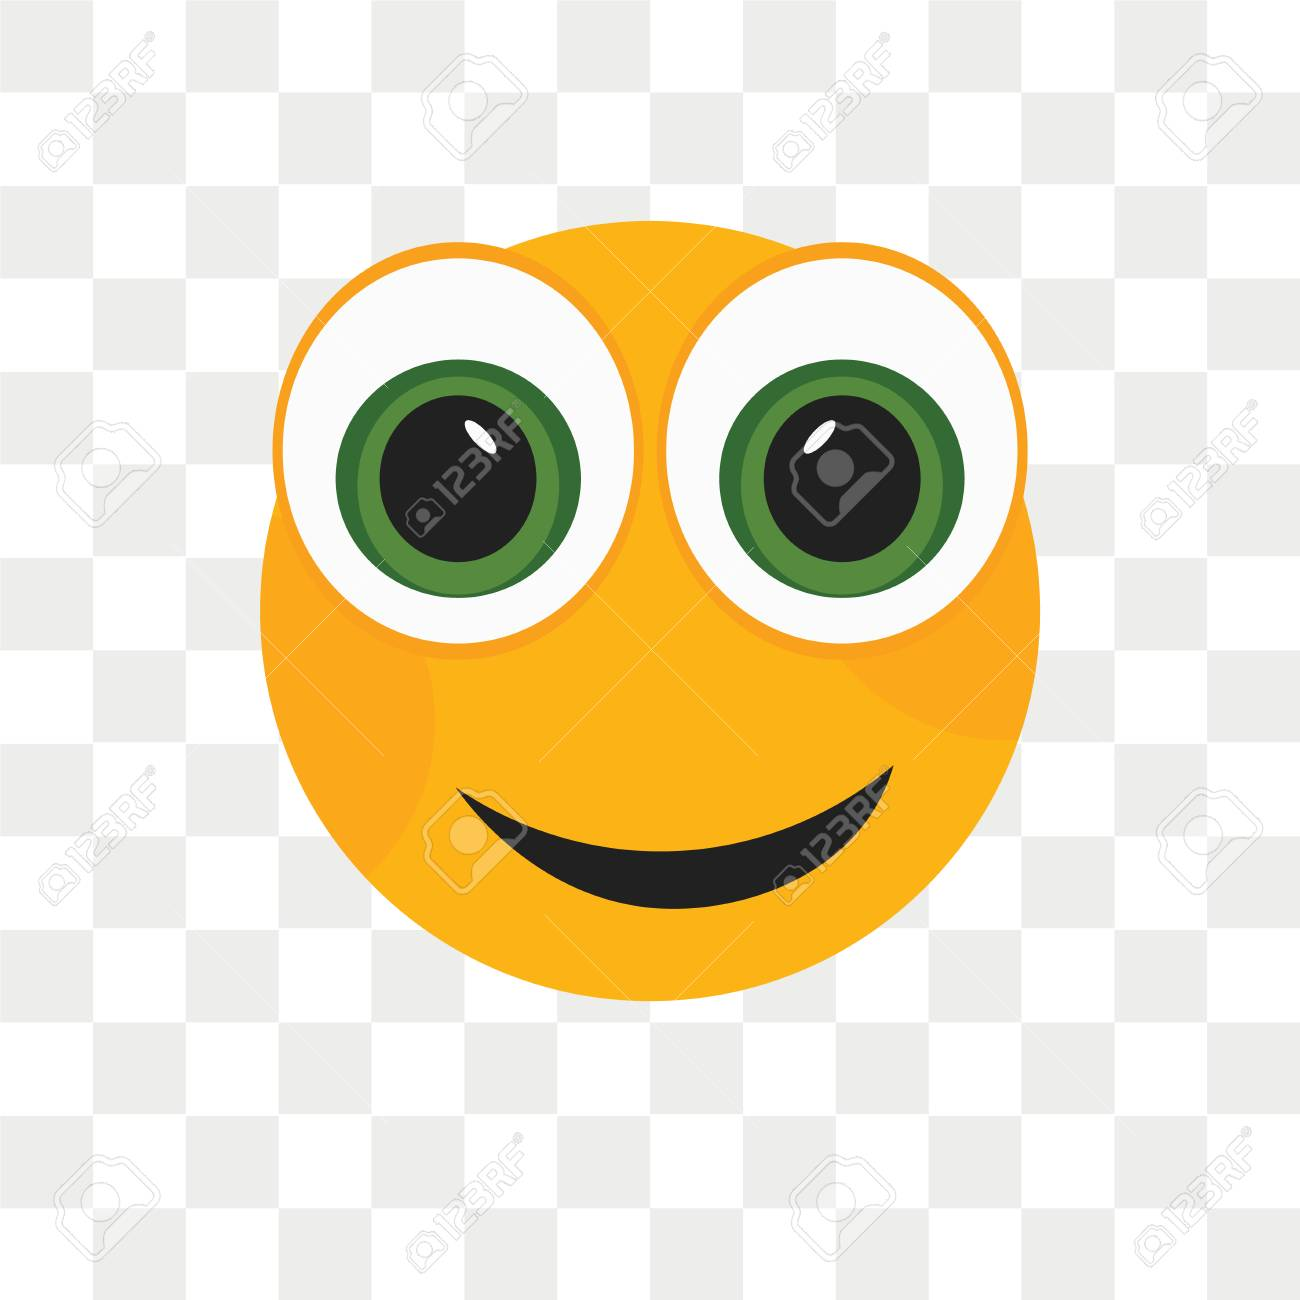 Angry Smile Vector Icon Isolated On Transparent Background Angry